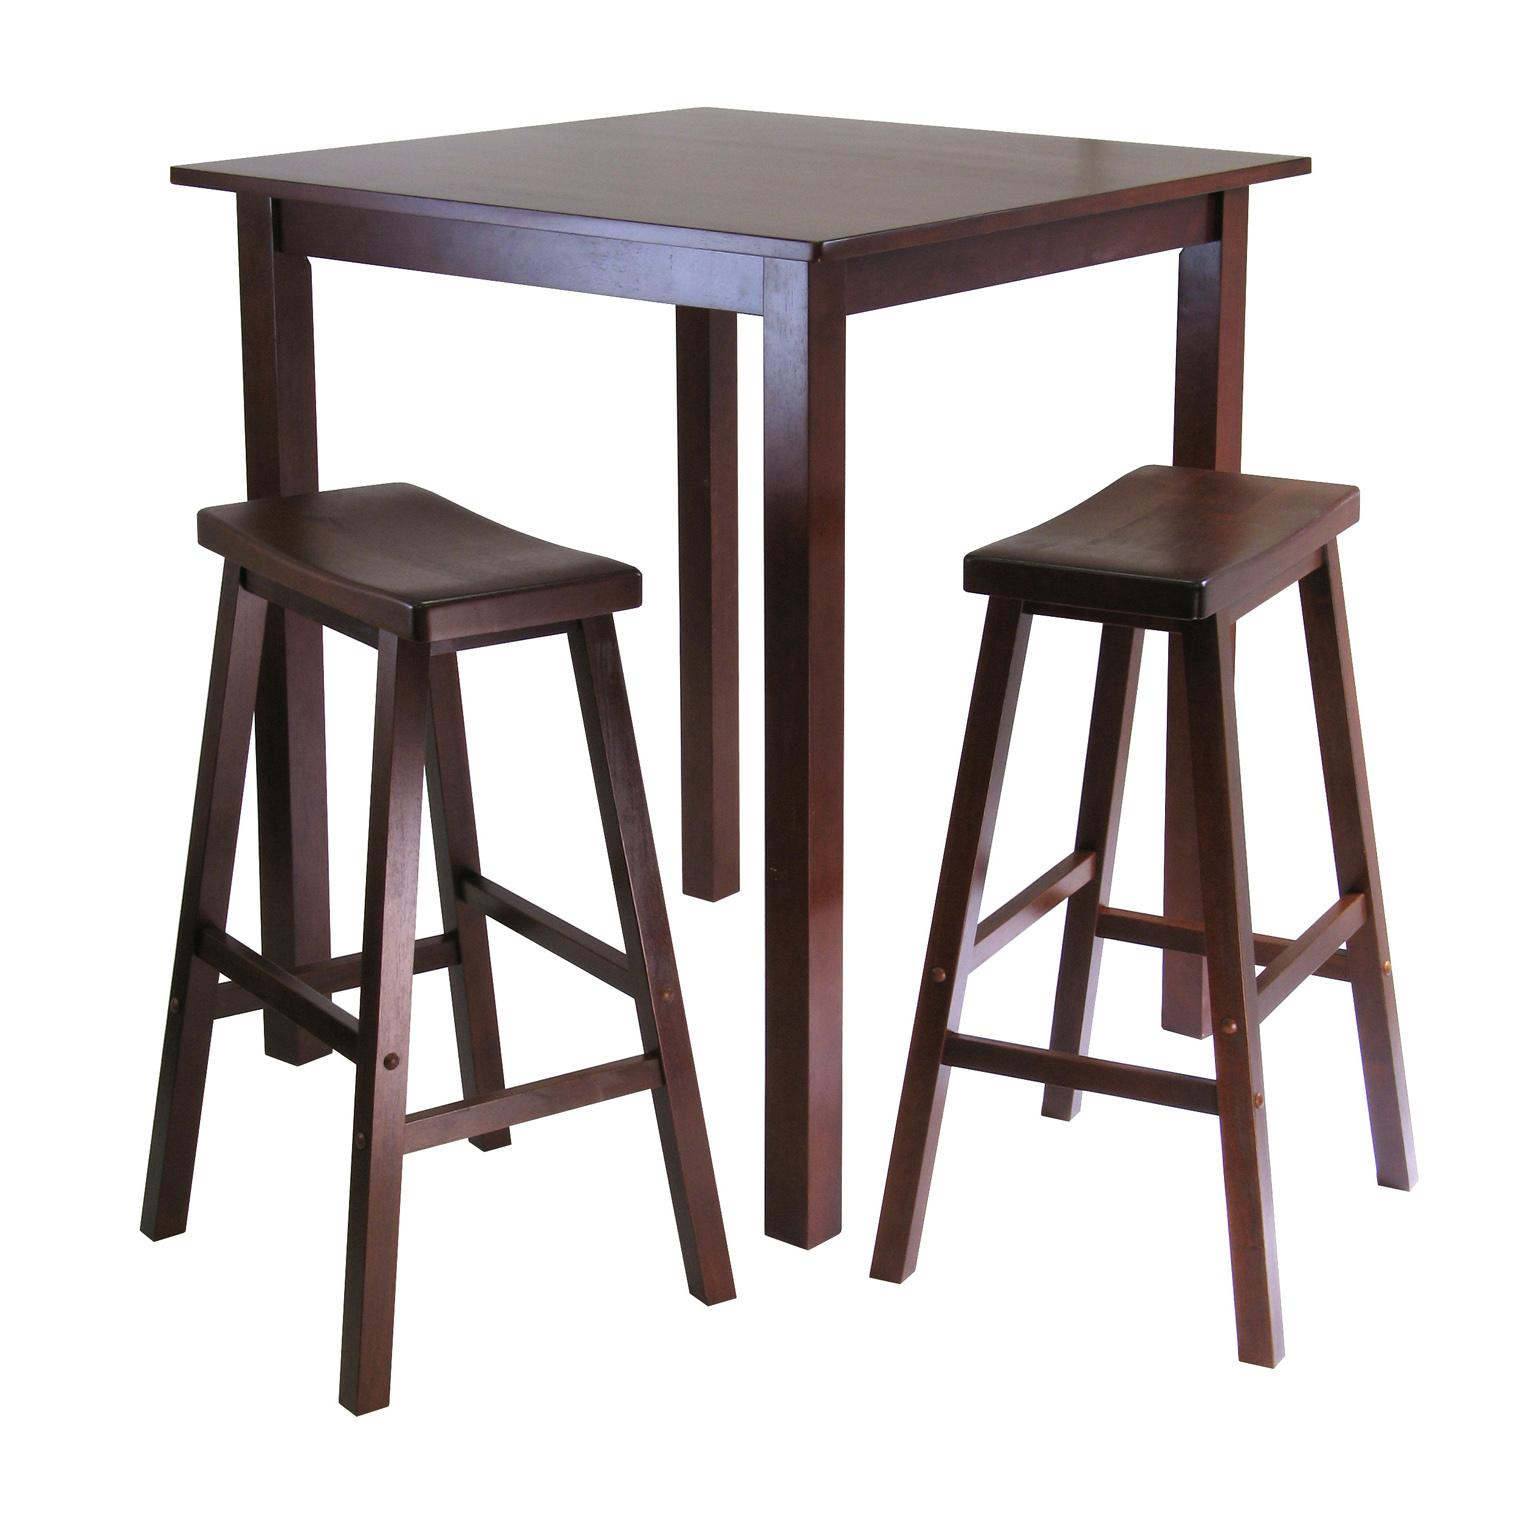 amazoncom winsome's parkland piece square highpub table set  - parkland pc square highpub table set with  saddle seat stools